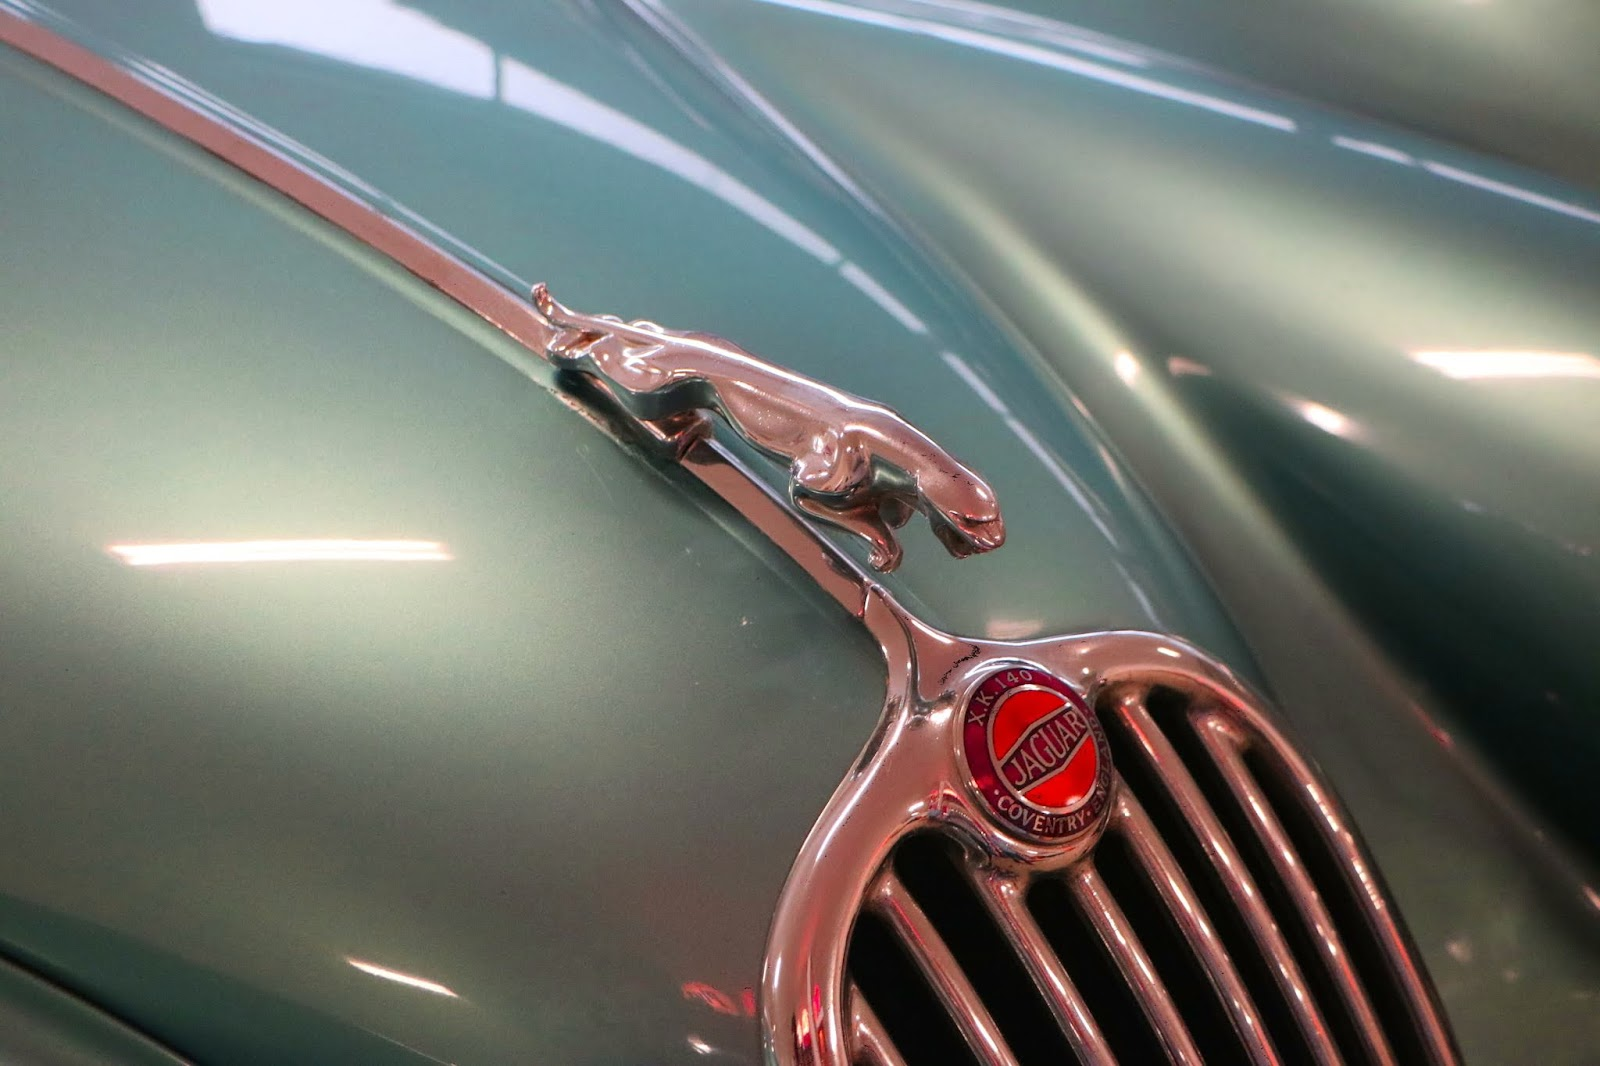 Carl_Lindner_Collection - 1953 Jaguar XK140 Coupe 06.JPG